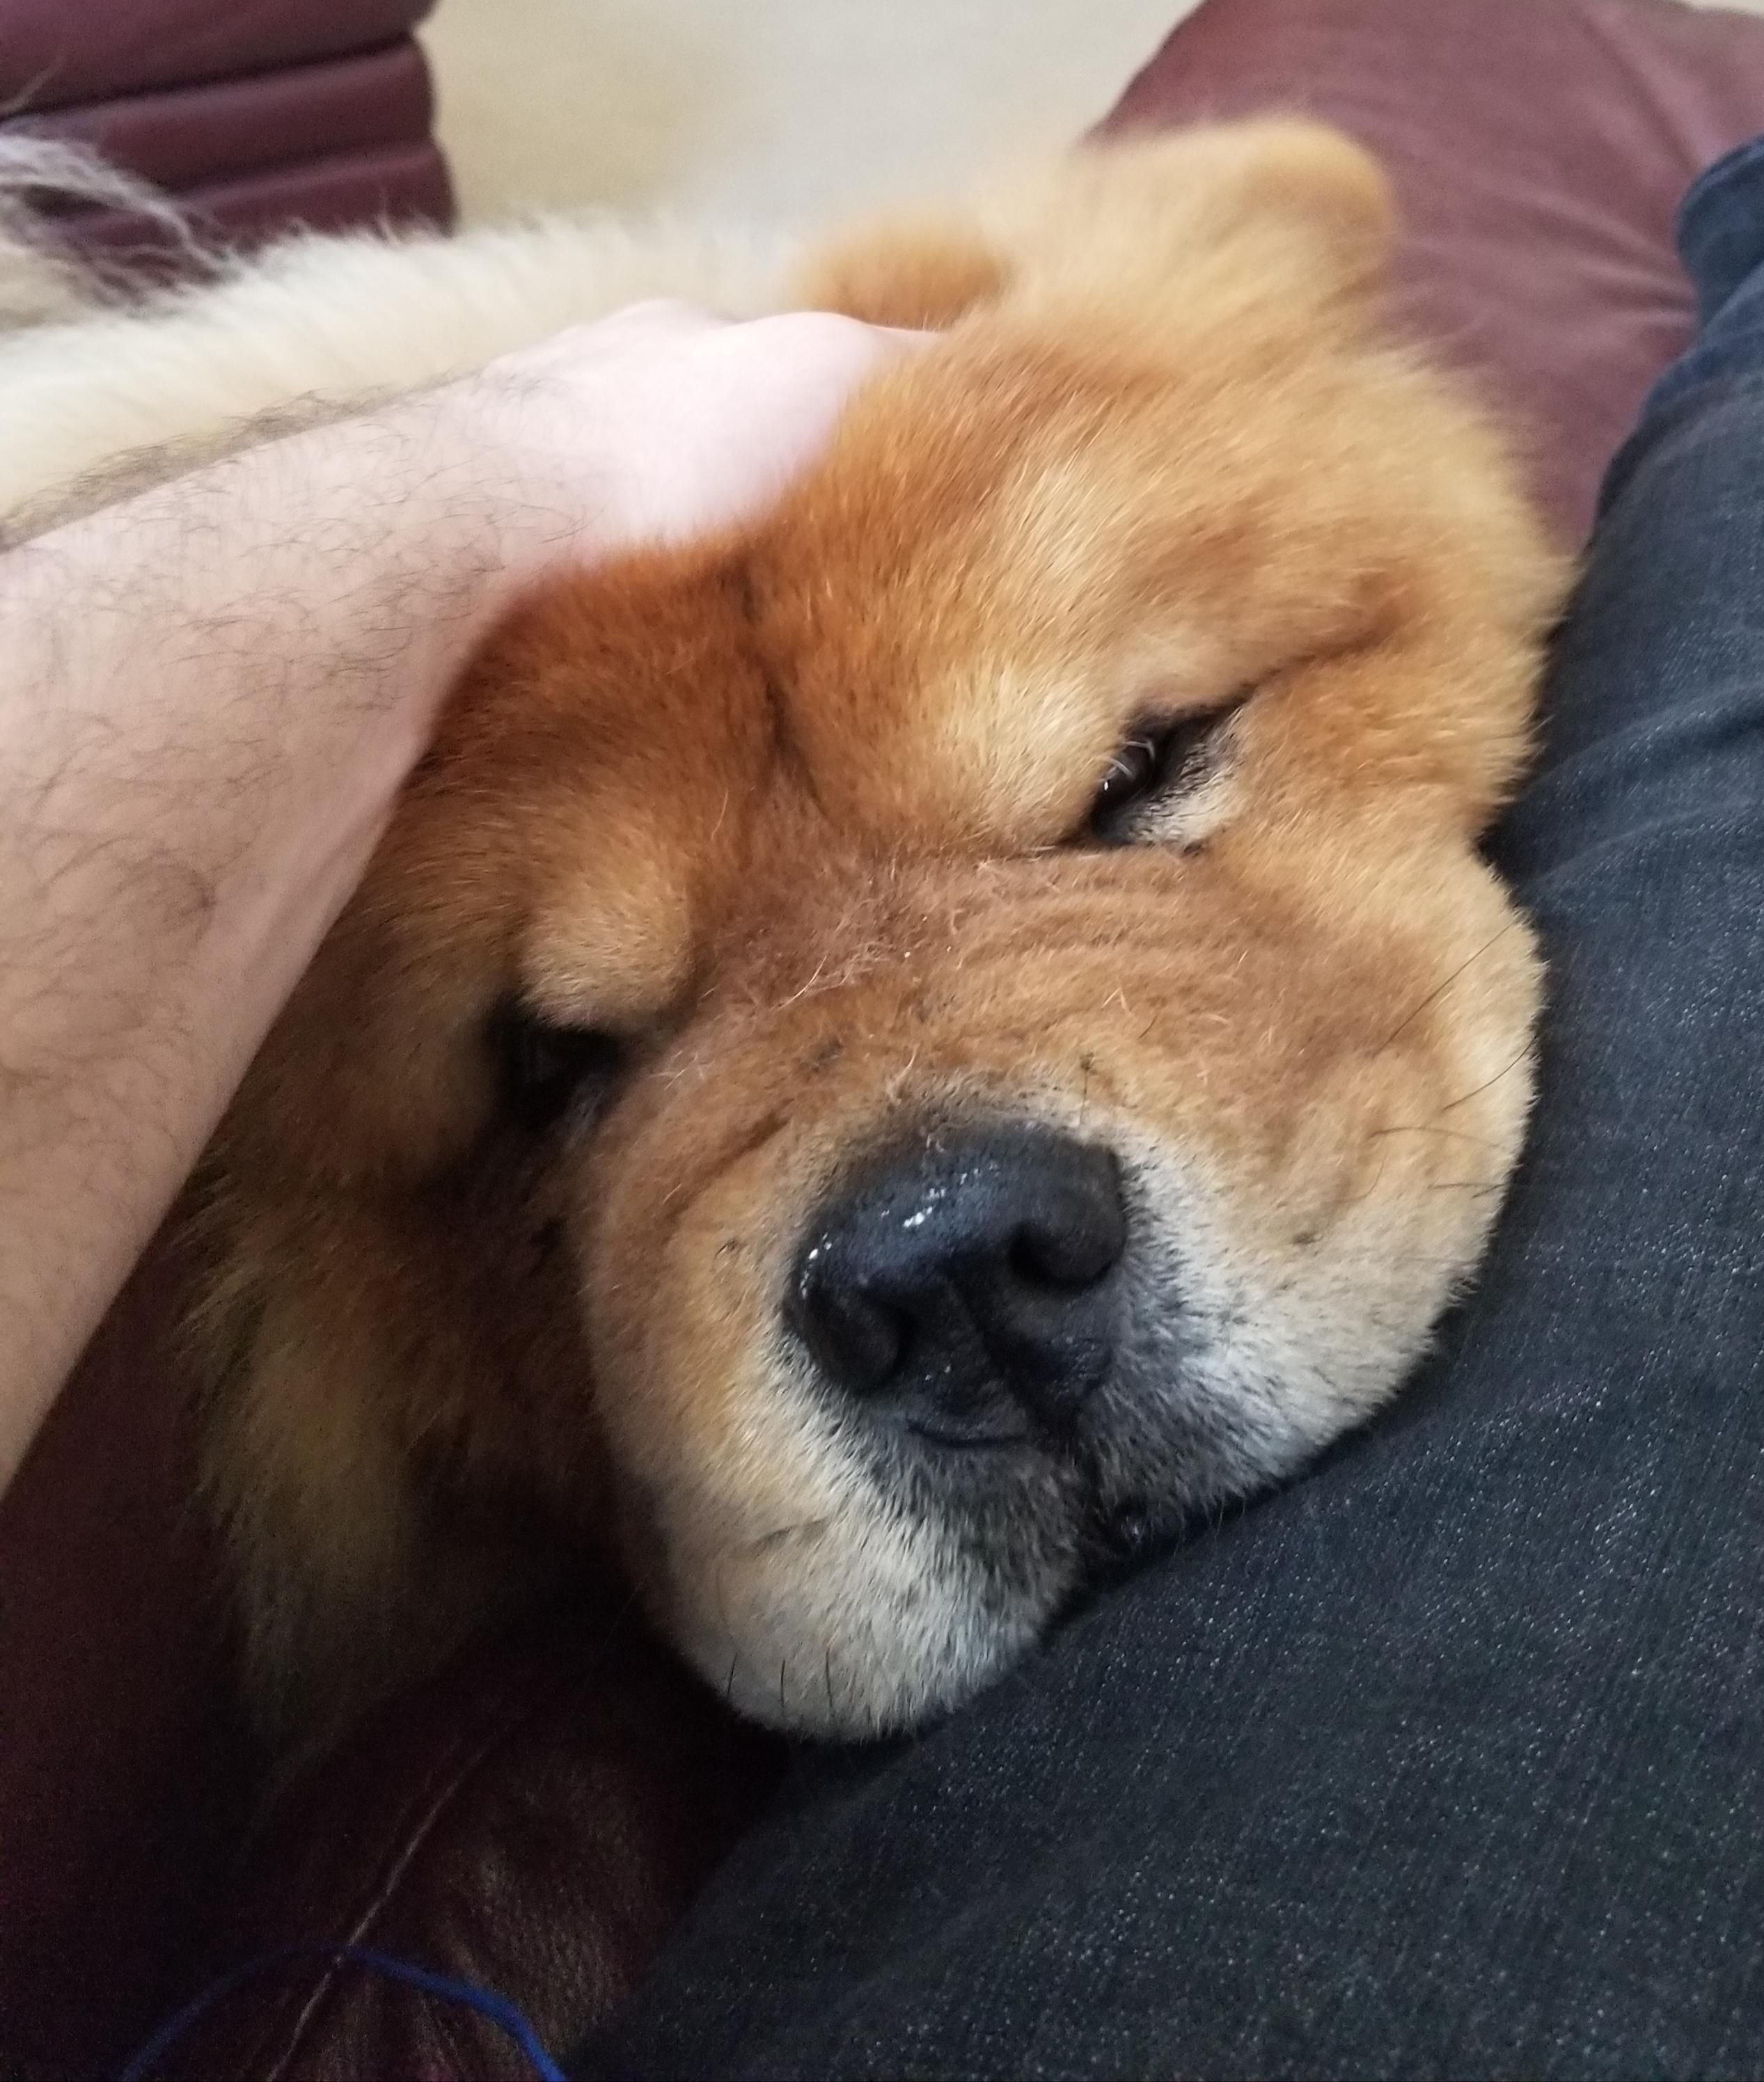 Chow Chow Wants Attention Dogpictures Dogs Aww Cuteanimals